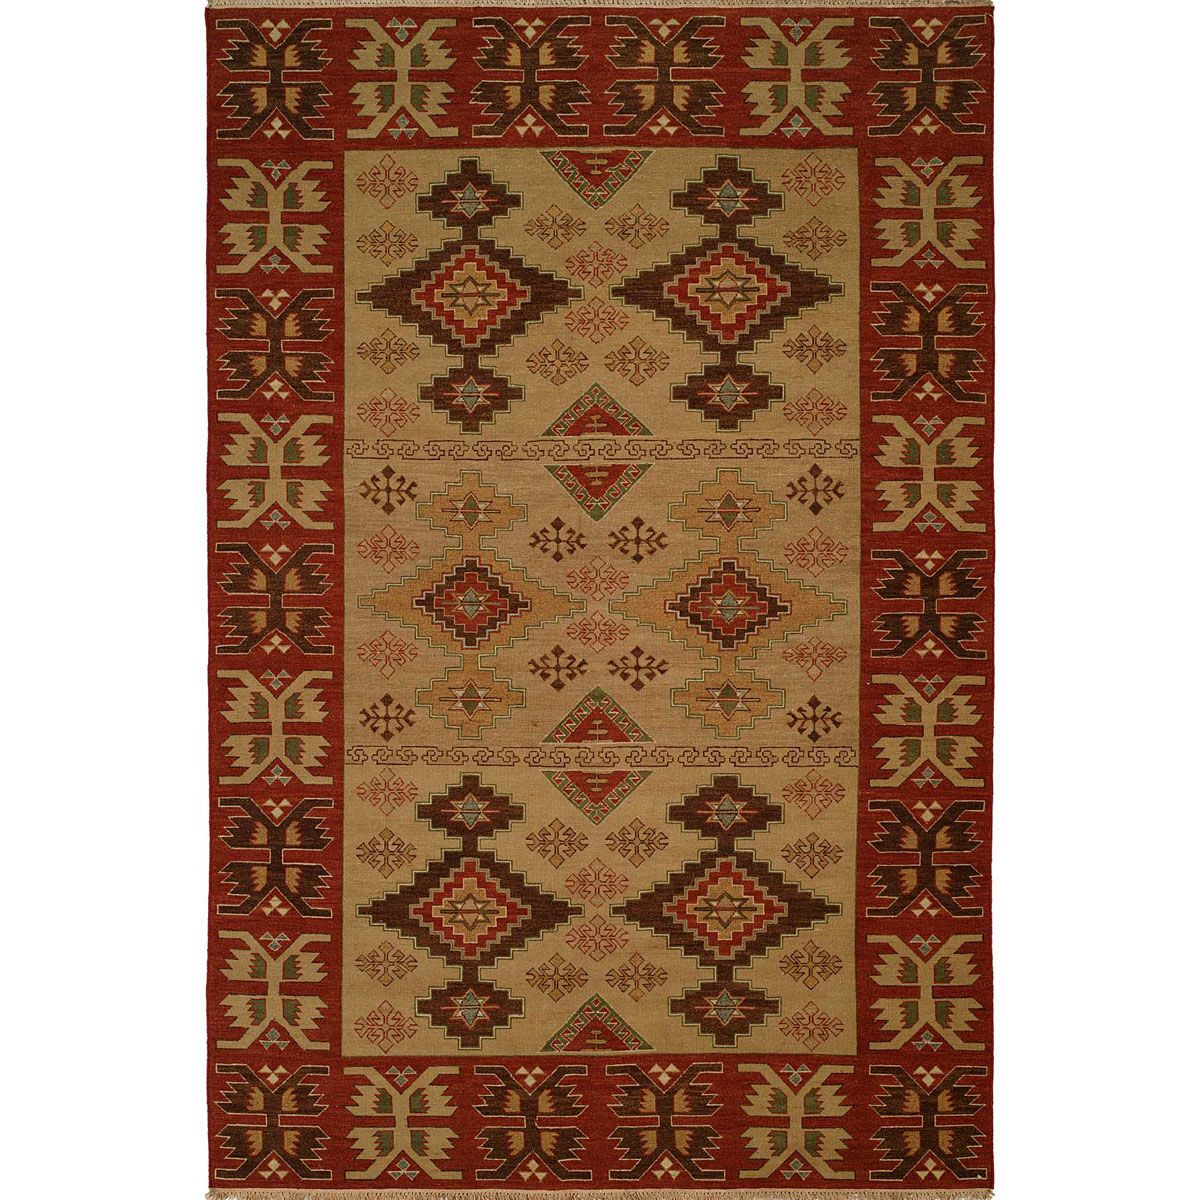 Fire Diamonds Rug - 2 x 3